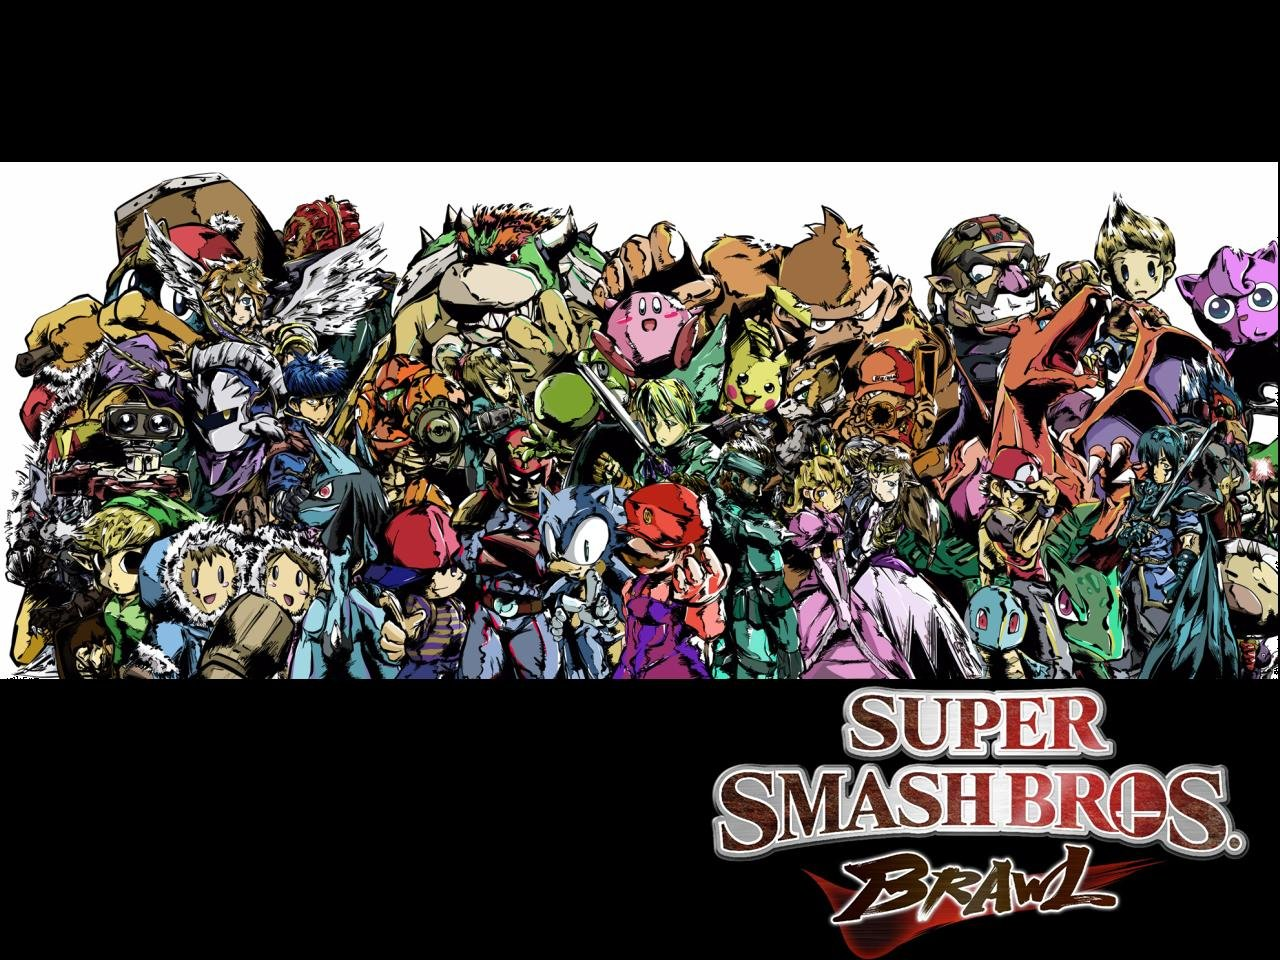 Super Smash Bros Brawl Wallpapers Hd For Desktop Backgrounds